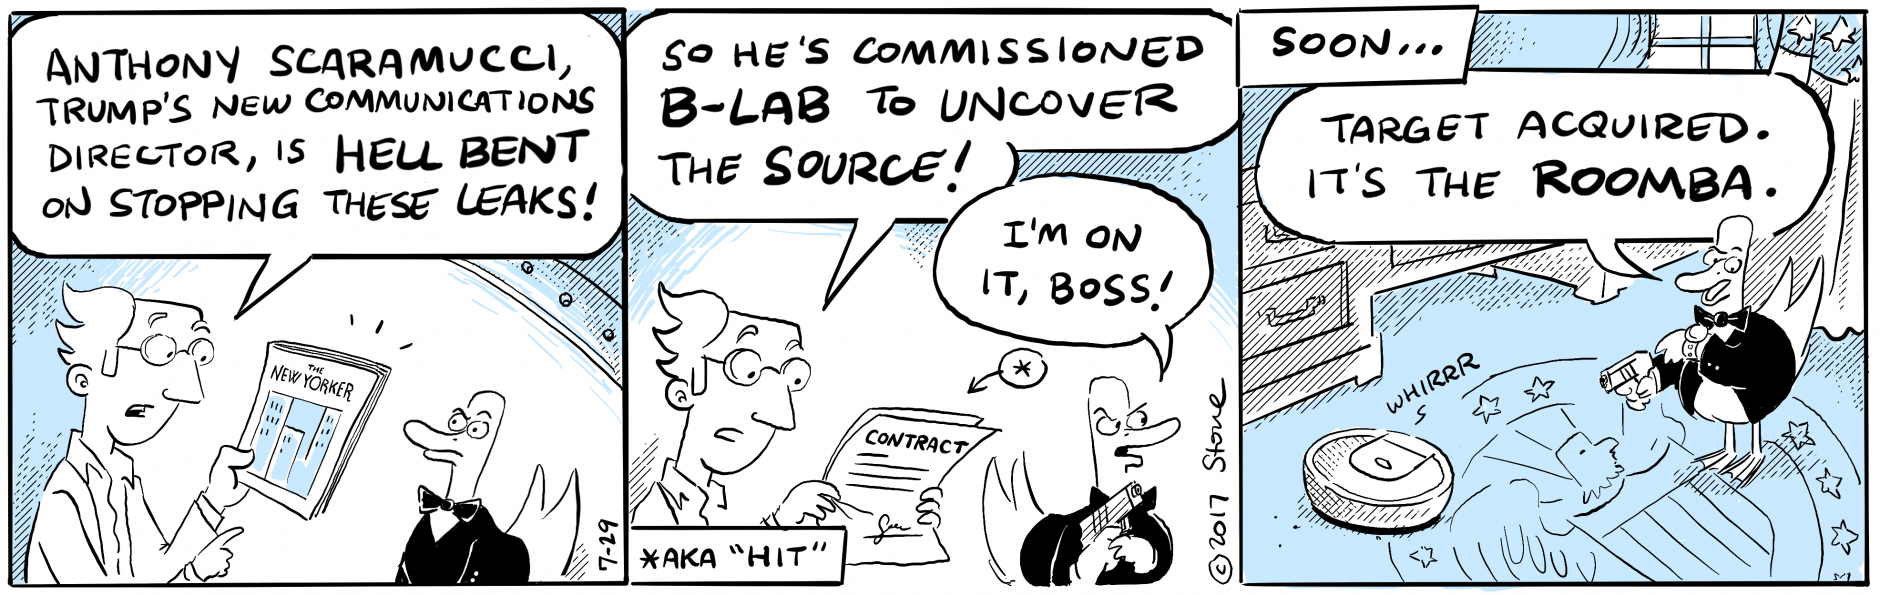 B-Lab discovers that working in the White House sucks. @Scaramucci @iRobot #Roomba #webcomic